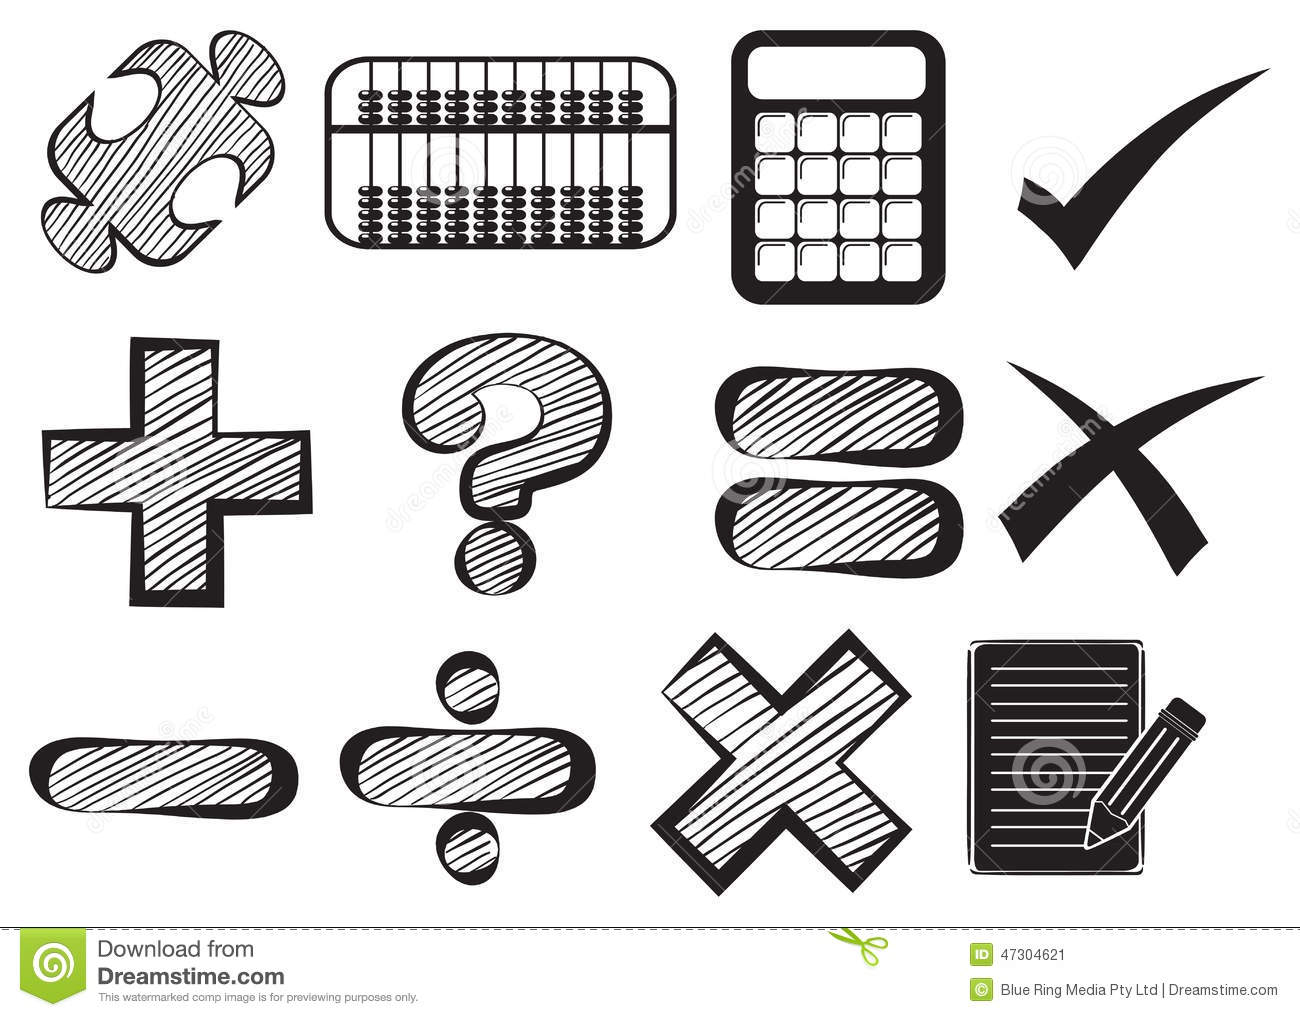 doodle design of the different math operations